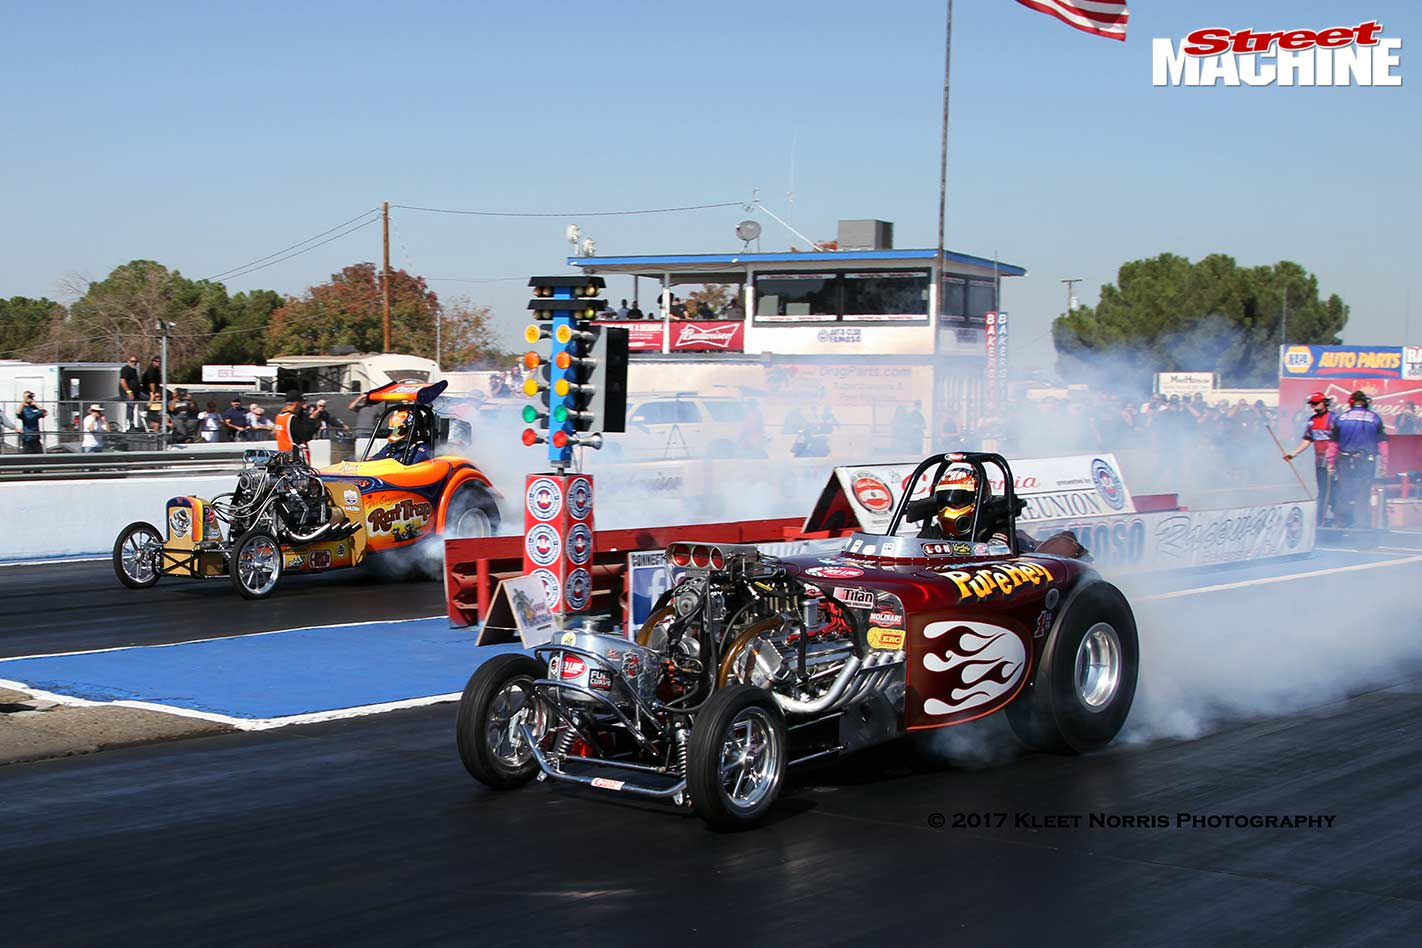 Pure Hell dragster